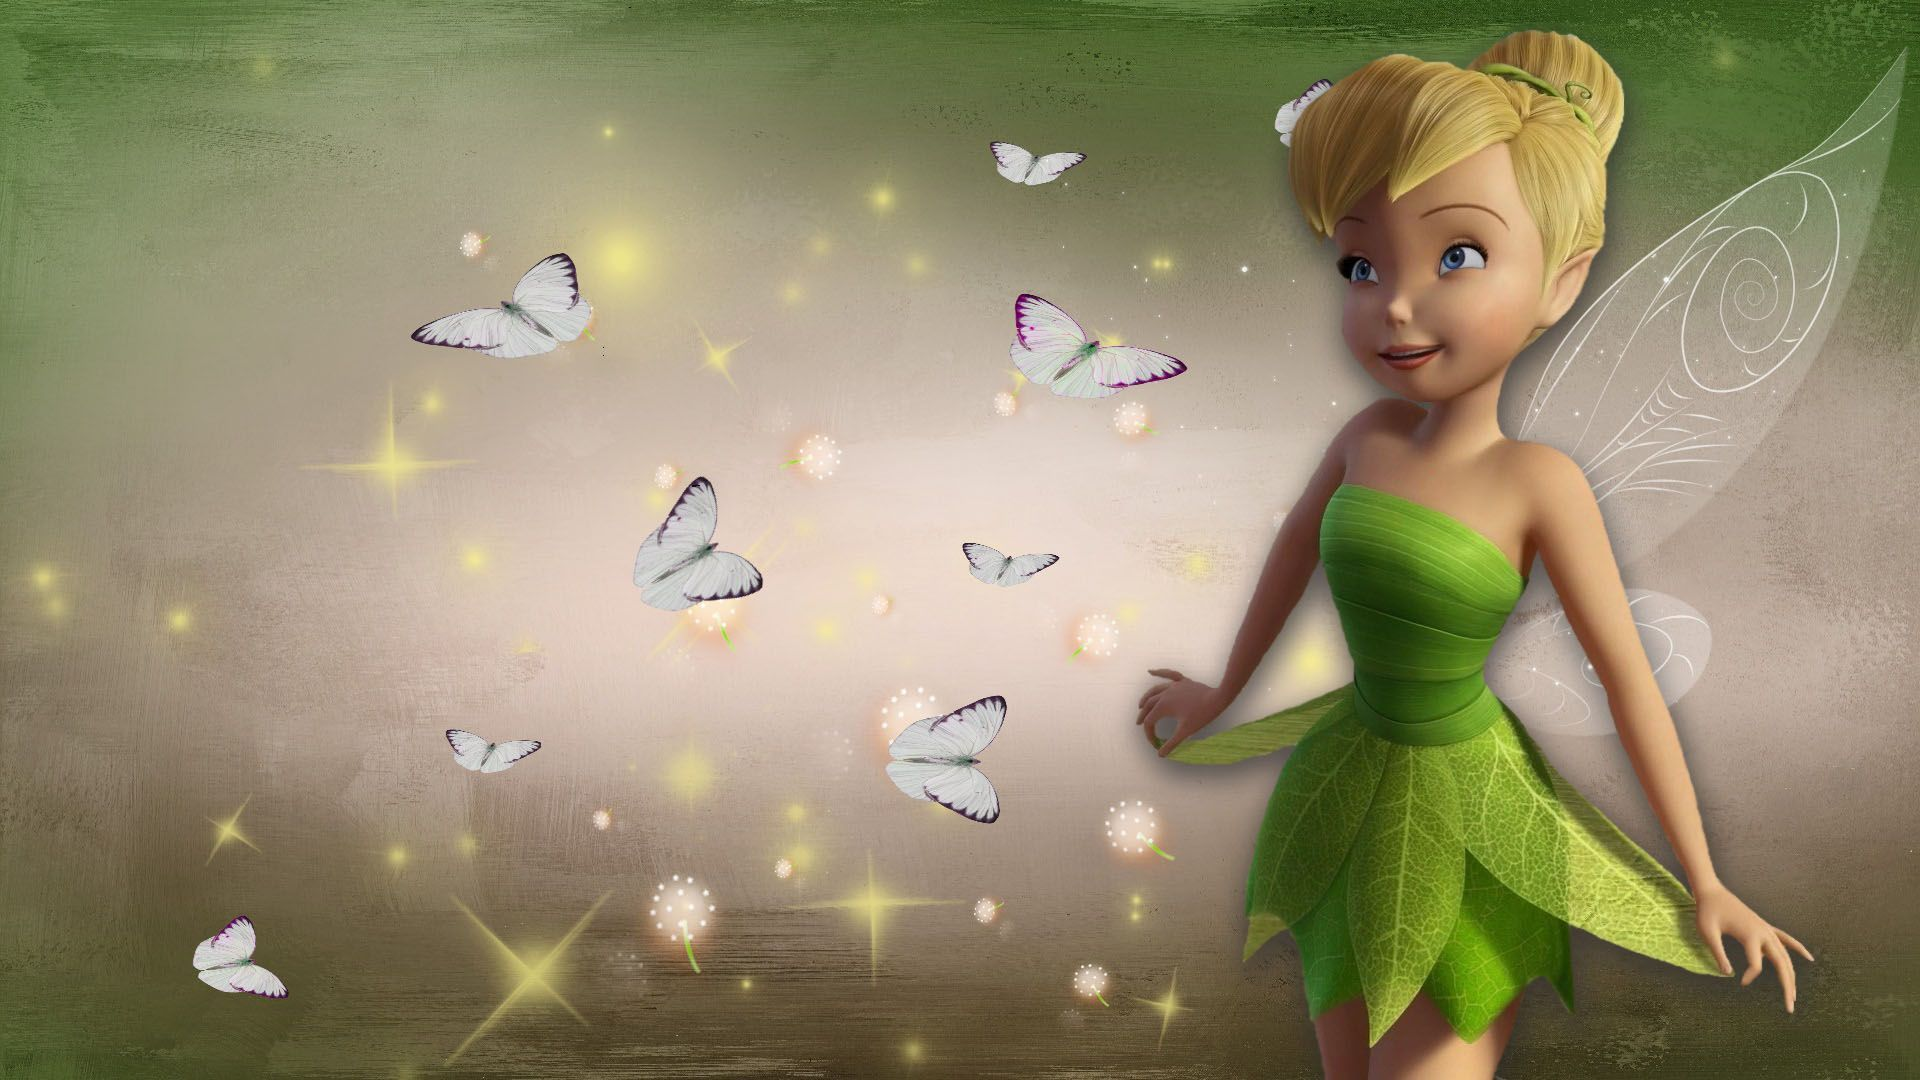 Kane blog picz tinkerbell wallpaper full hd hd wallpapers tinker bell wallpaper hd for desktop mobile and tablet tinkerbell desktop wallpapers wallpapers voltagebd Image collections